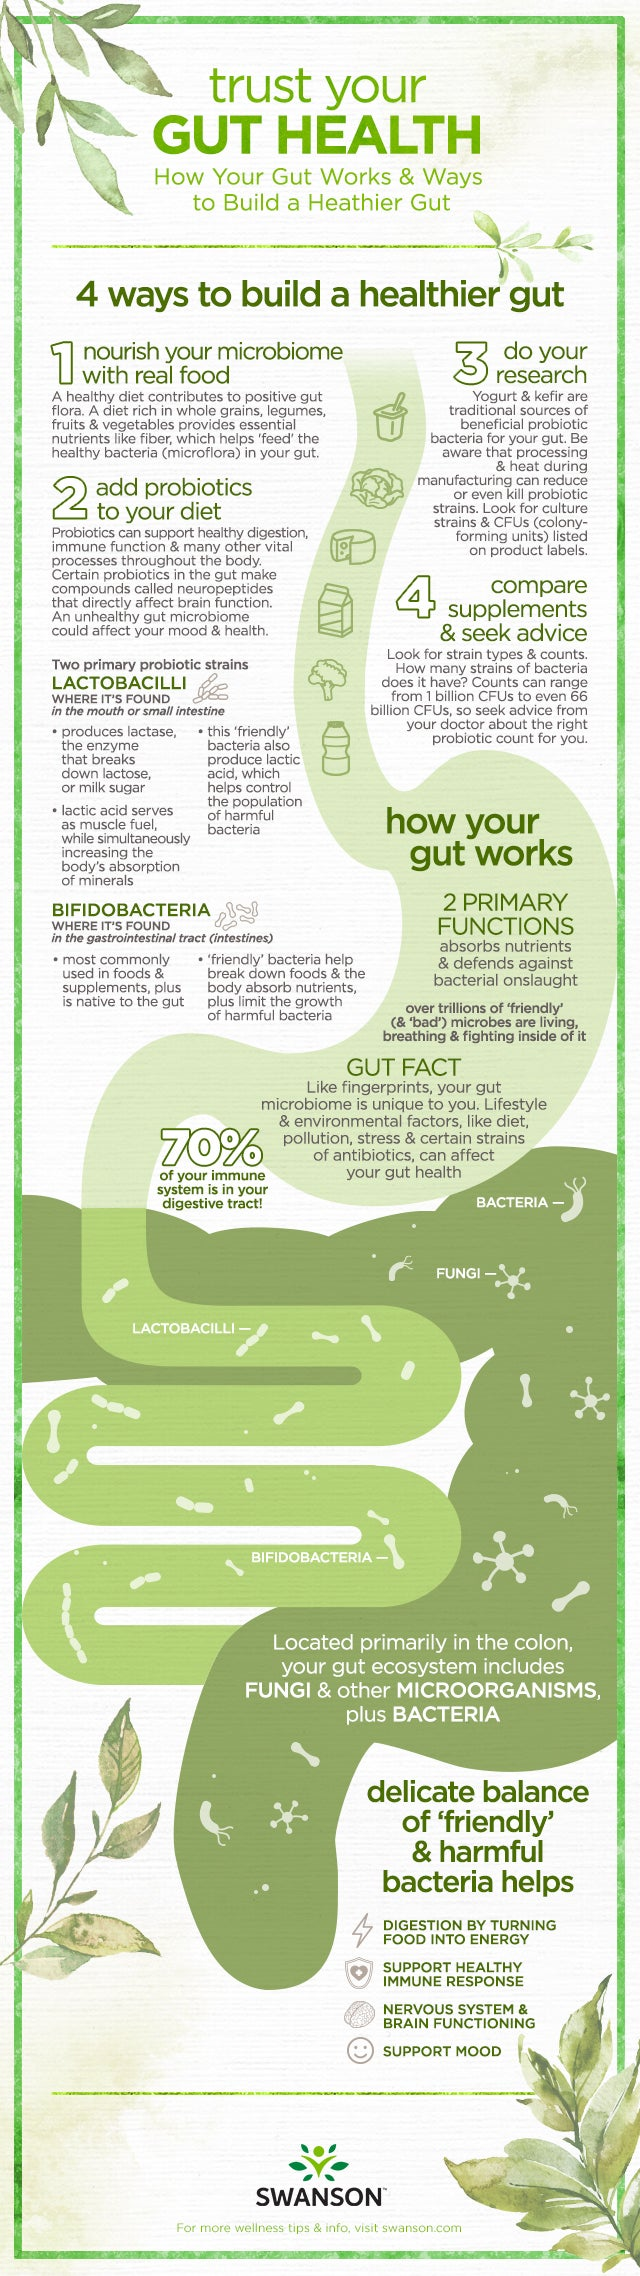 Trust Your Gut Health - how your gut works, plus tips for a healthy gut by Swanson Health